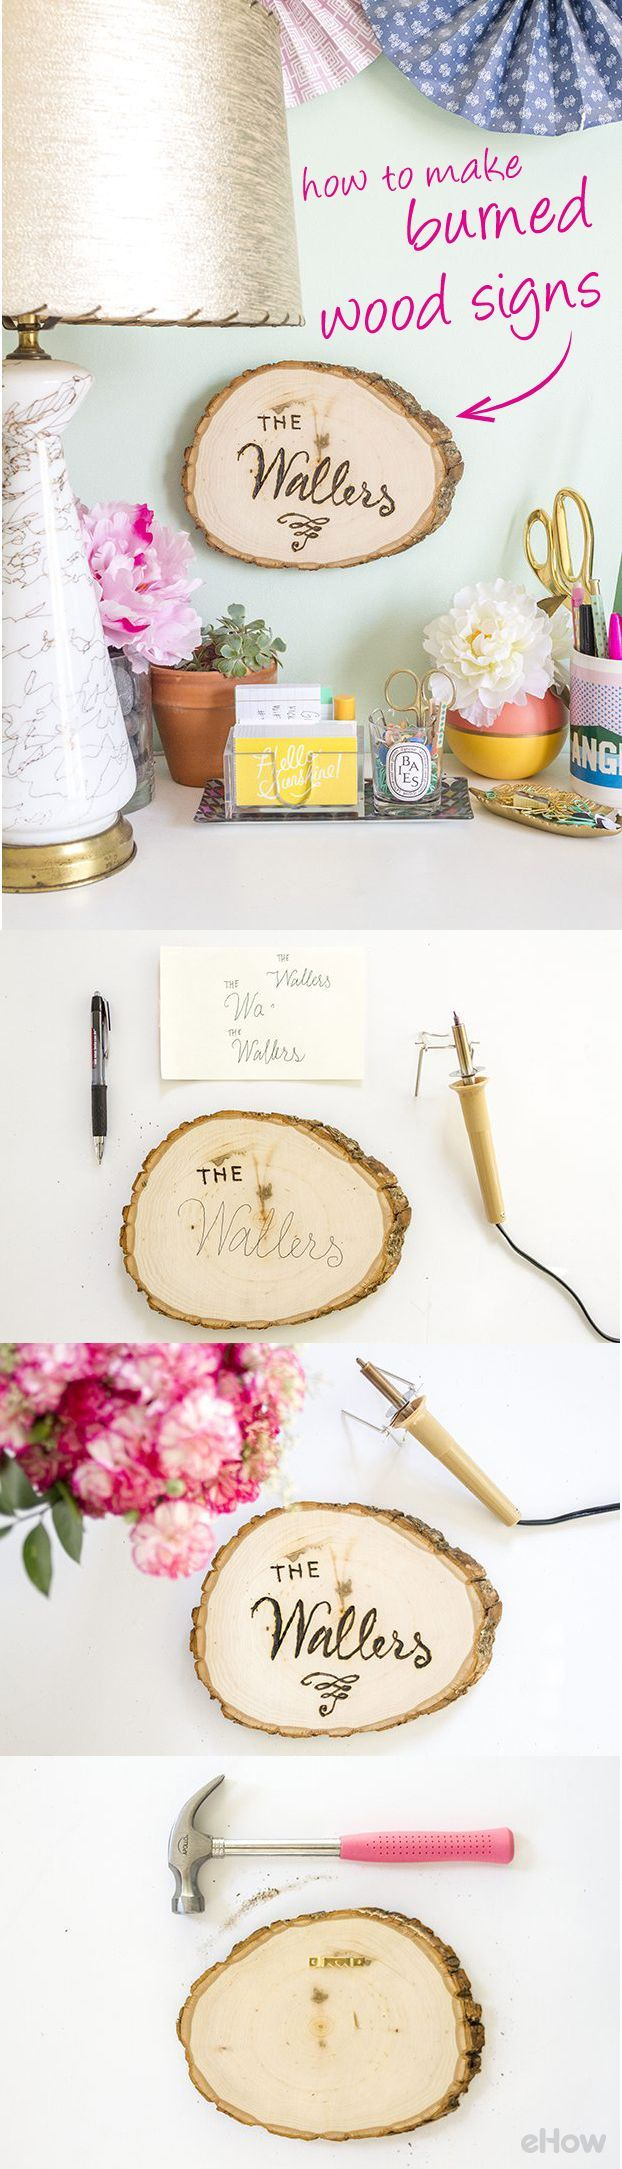 So trendy right now, wood signs you can DIY! Simply use a wood-burning tool to add your favorite phrase or your family name to a cut wood slab. The project requires just a few steps, and the results will last forever when properly sealed and cared for. The how to with pictures here: http://www.ehow.com/how_7158036_make-burned-wood-signs.html?utm_source=pinterest.com&utm_medium=referral&utm_content=inline&utm_campaign=fanpage